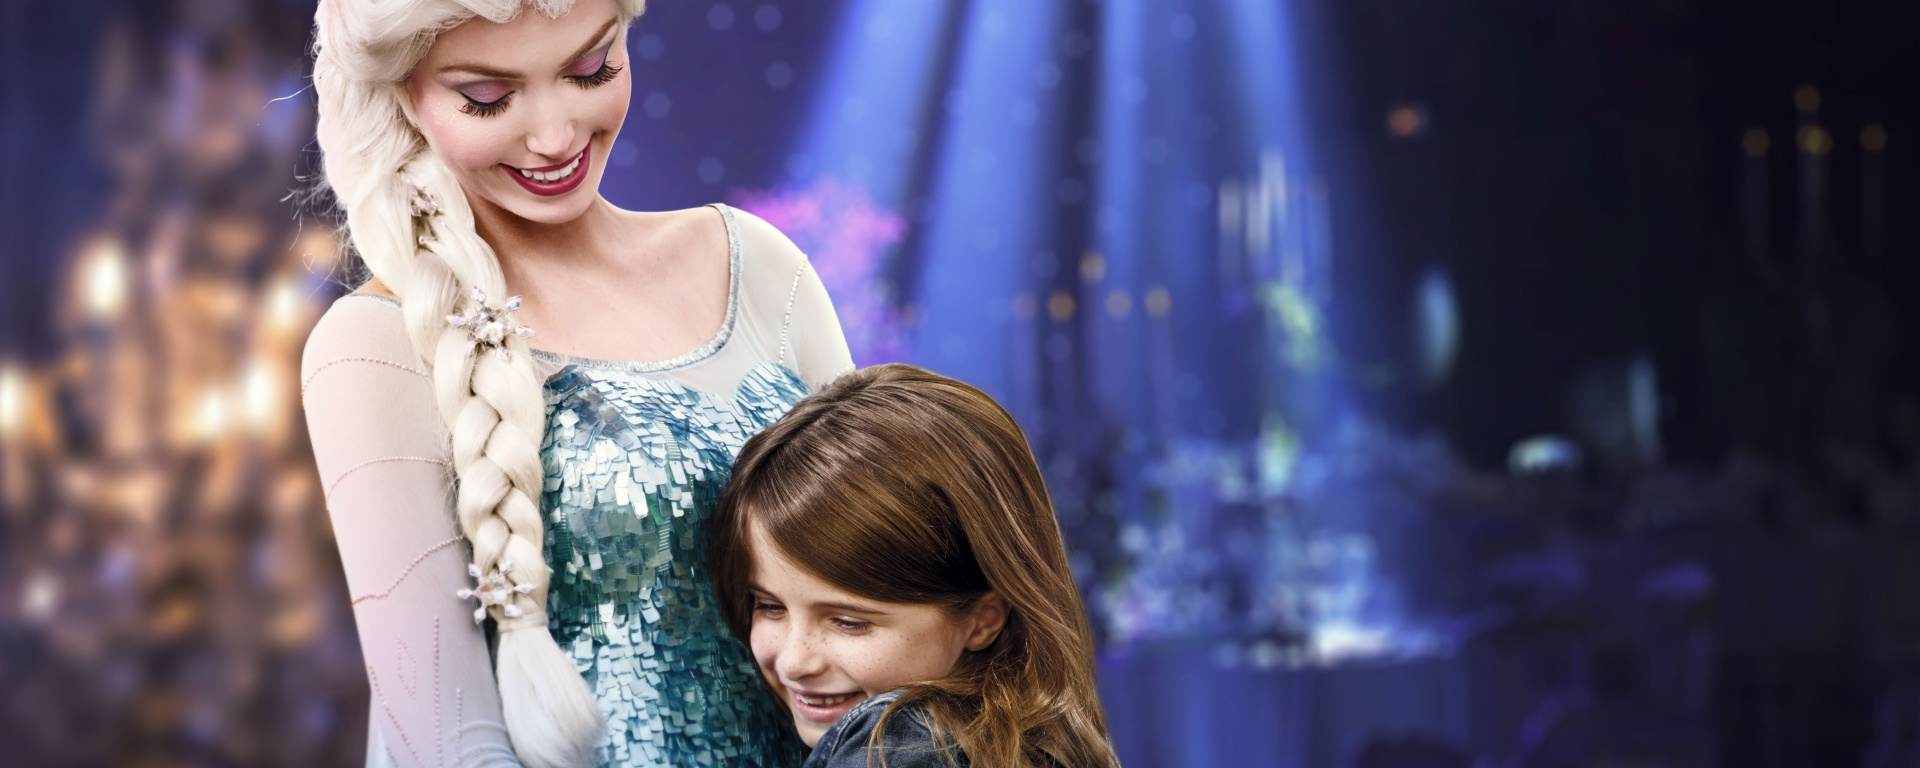 Be Among The Lucky Few To Meet Anna And Elsa In Person At A Private